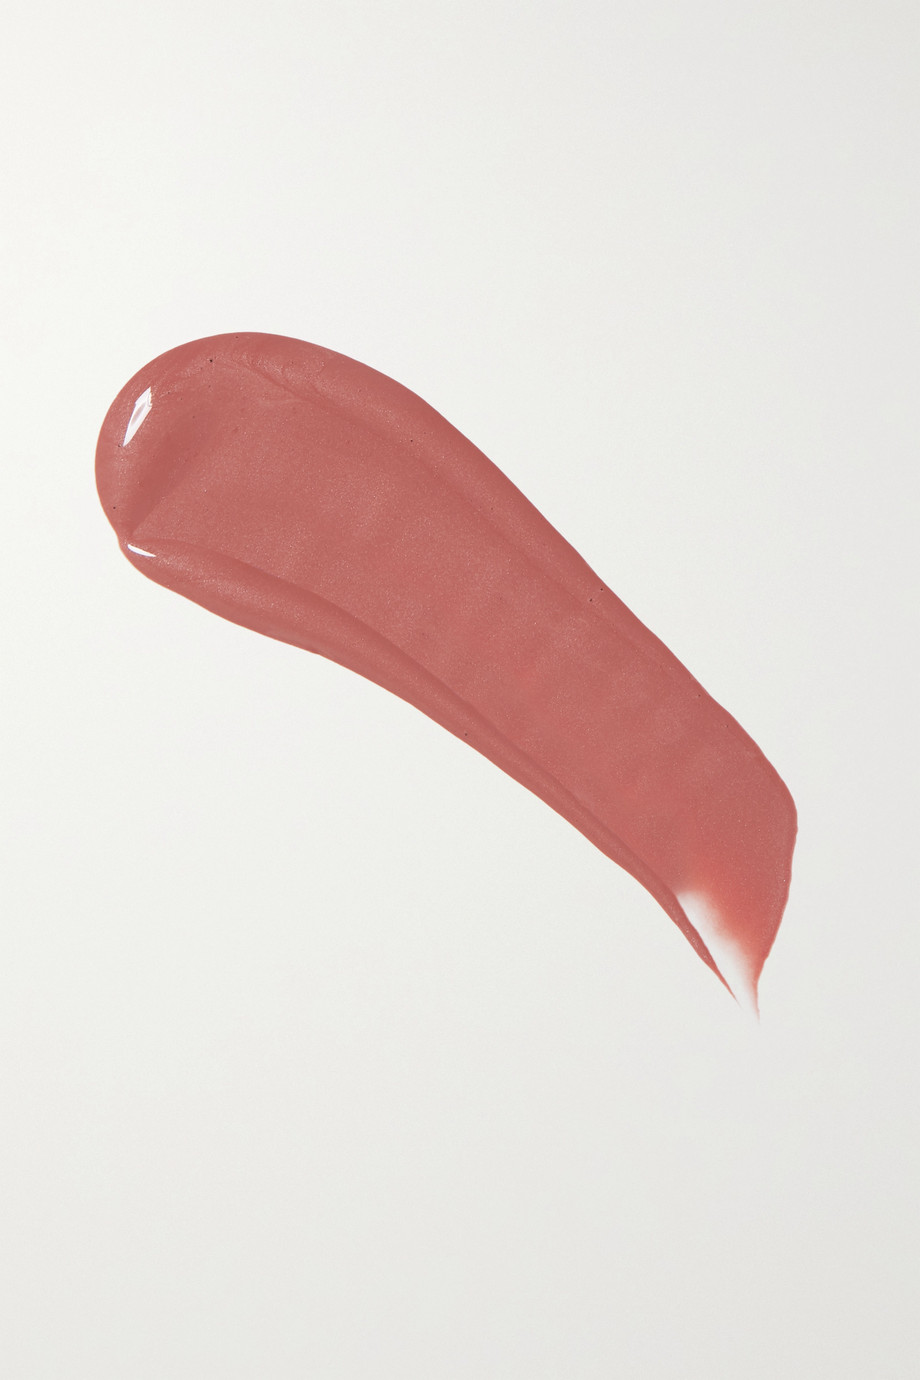 Charlotte Tilbury Lip Lustre Luxe Color-Rich Lip Lacquer - Pillow Talk